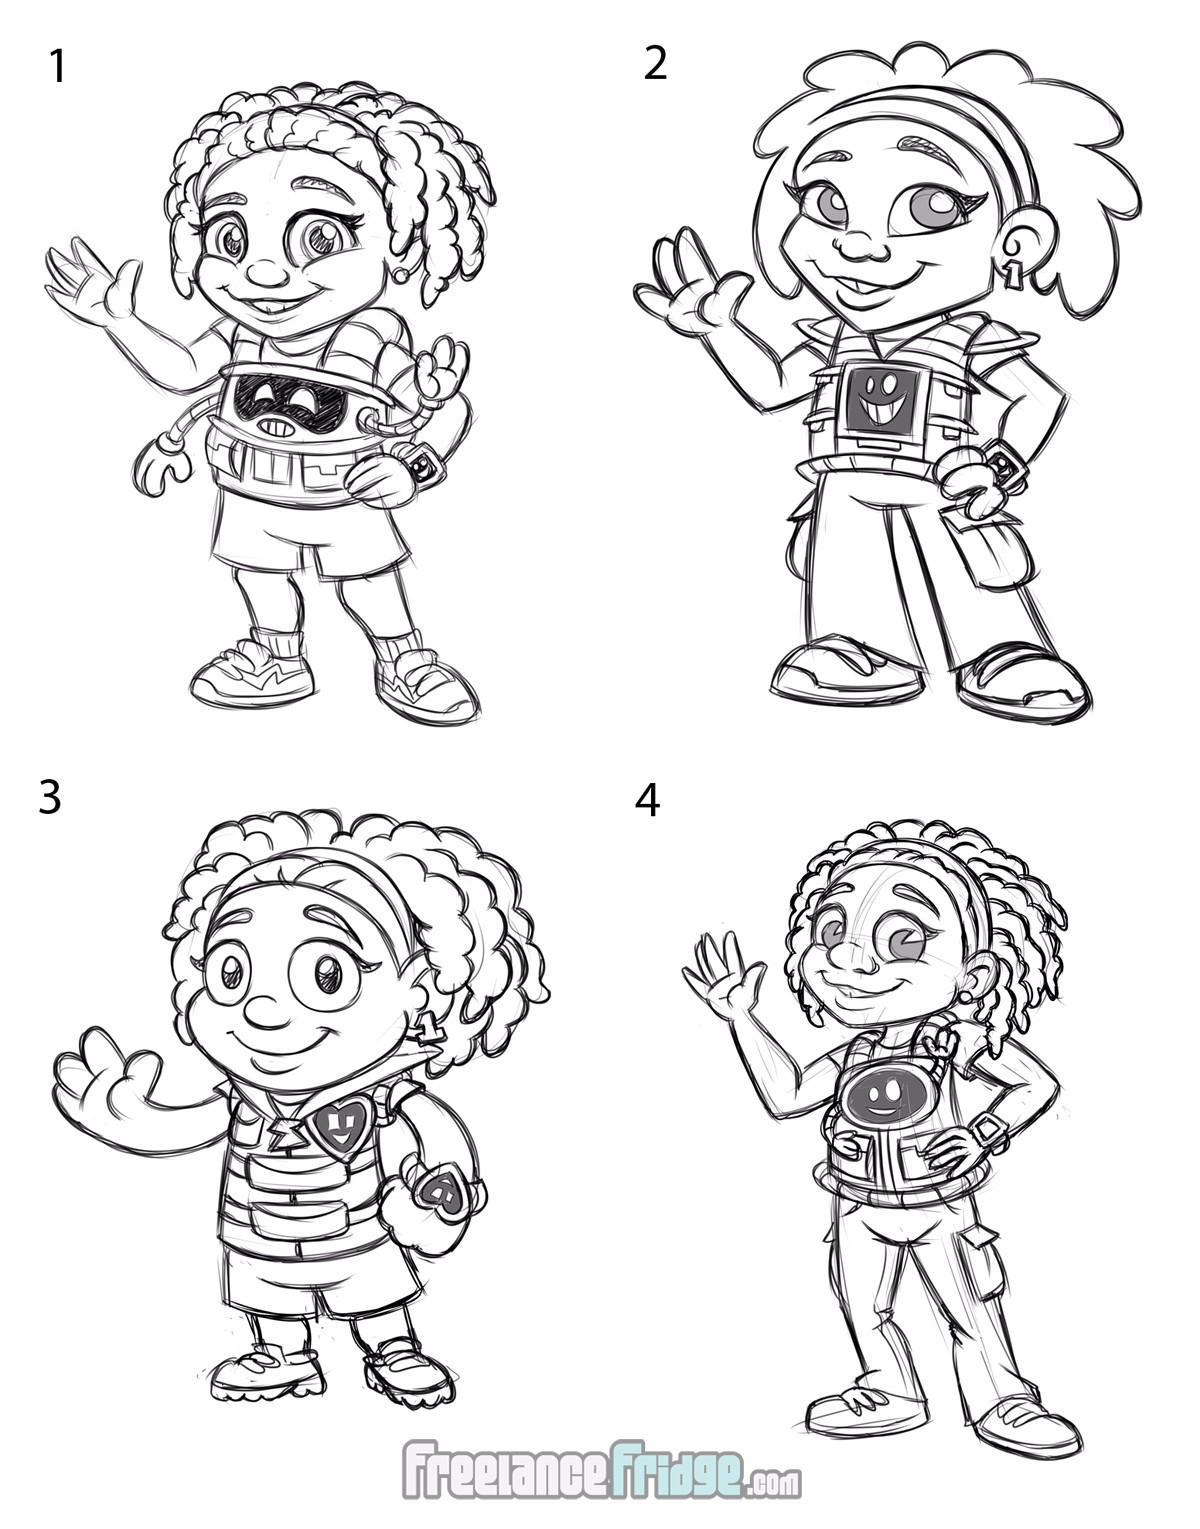 Childrens Book Girl character Halyn concept sketches